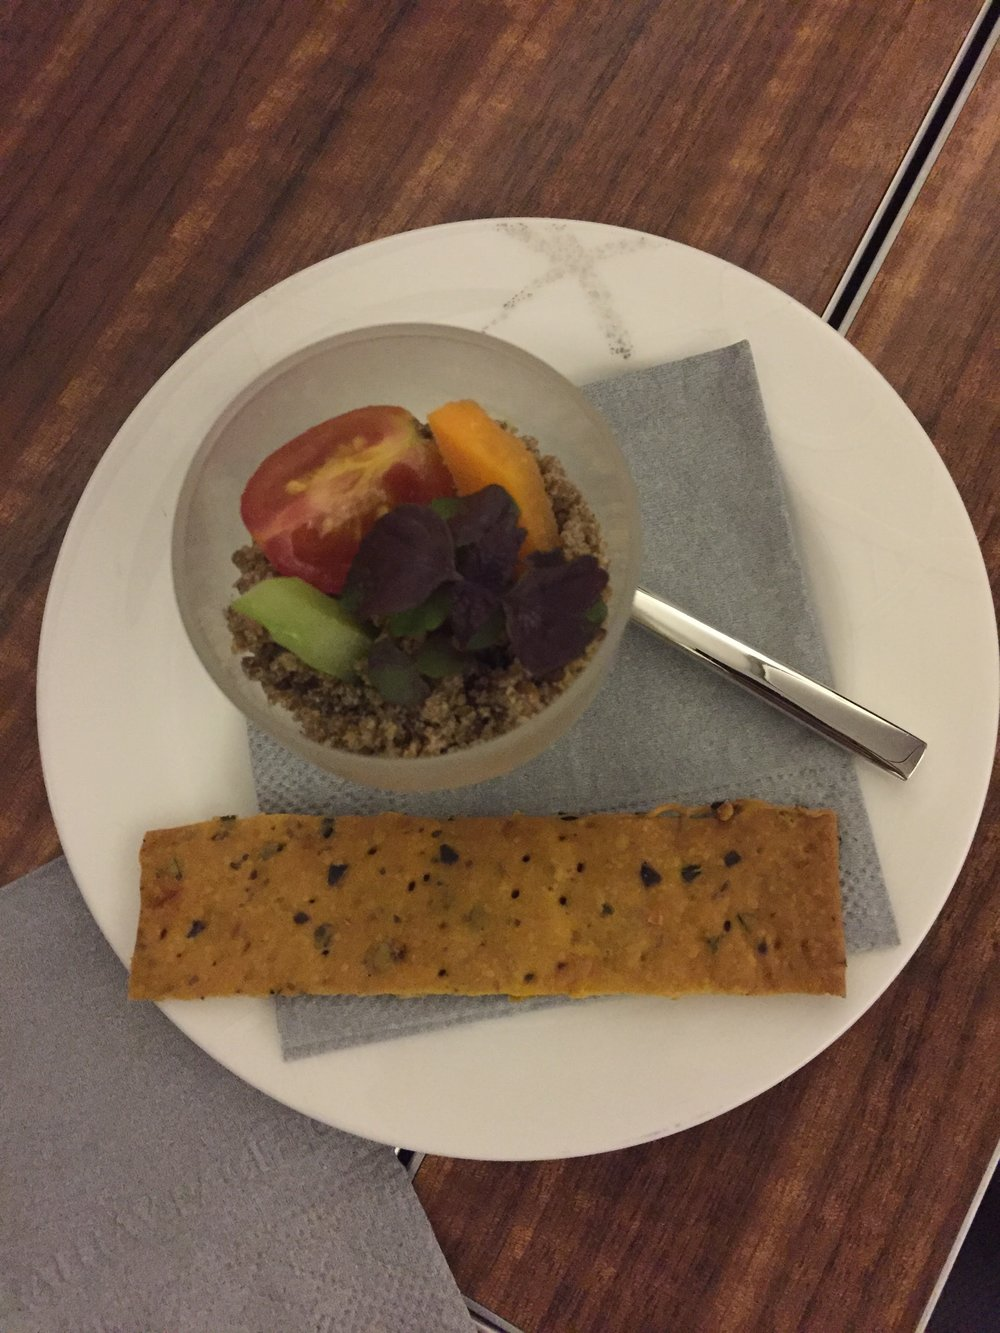 Cathay Pacific first class VGML (vegan) amuse-bouche